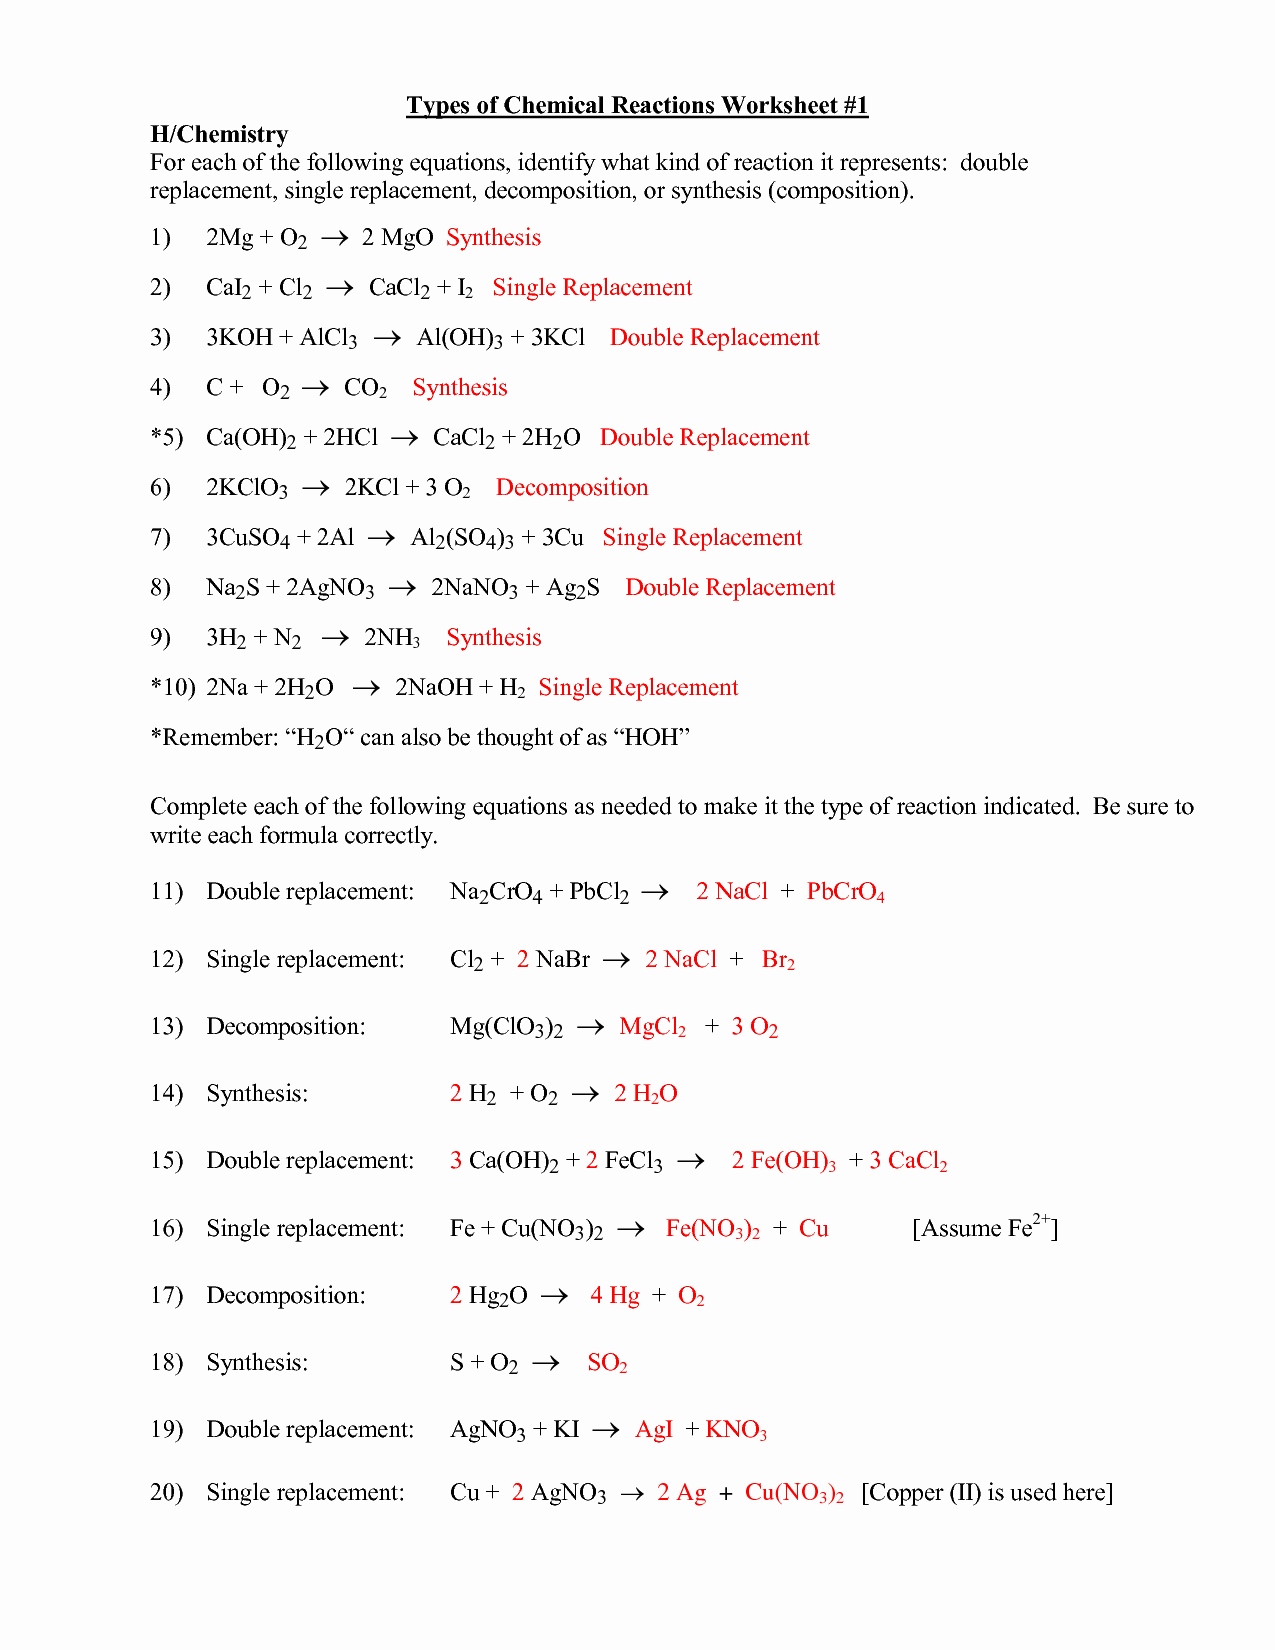 Classifying Chemical Reactions Worksheet Answers New 16 Best Of Types Chemical Reactions Worksheets